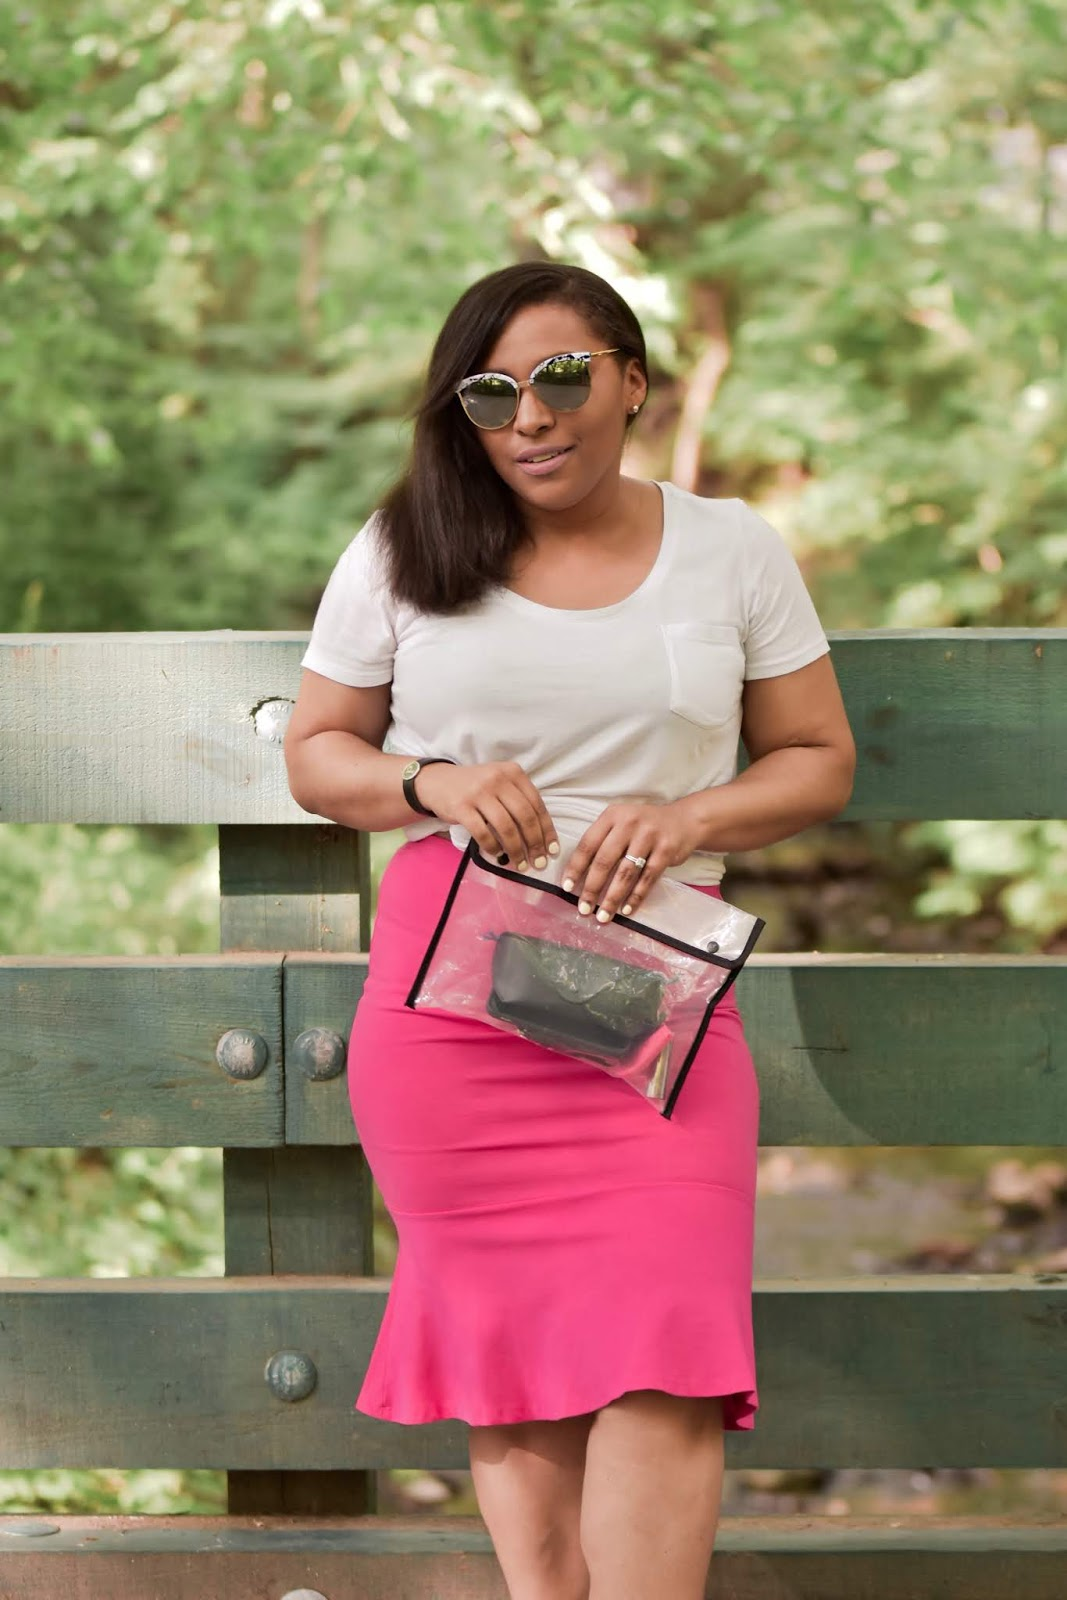 mom blogs, mom bloggers, fashionable moms, summer outfits, summer outfit ideas, neon trend, pink outfits